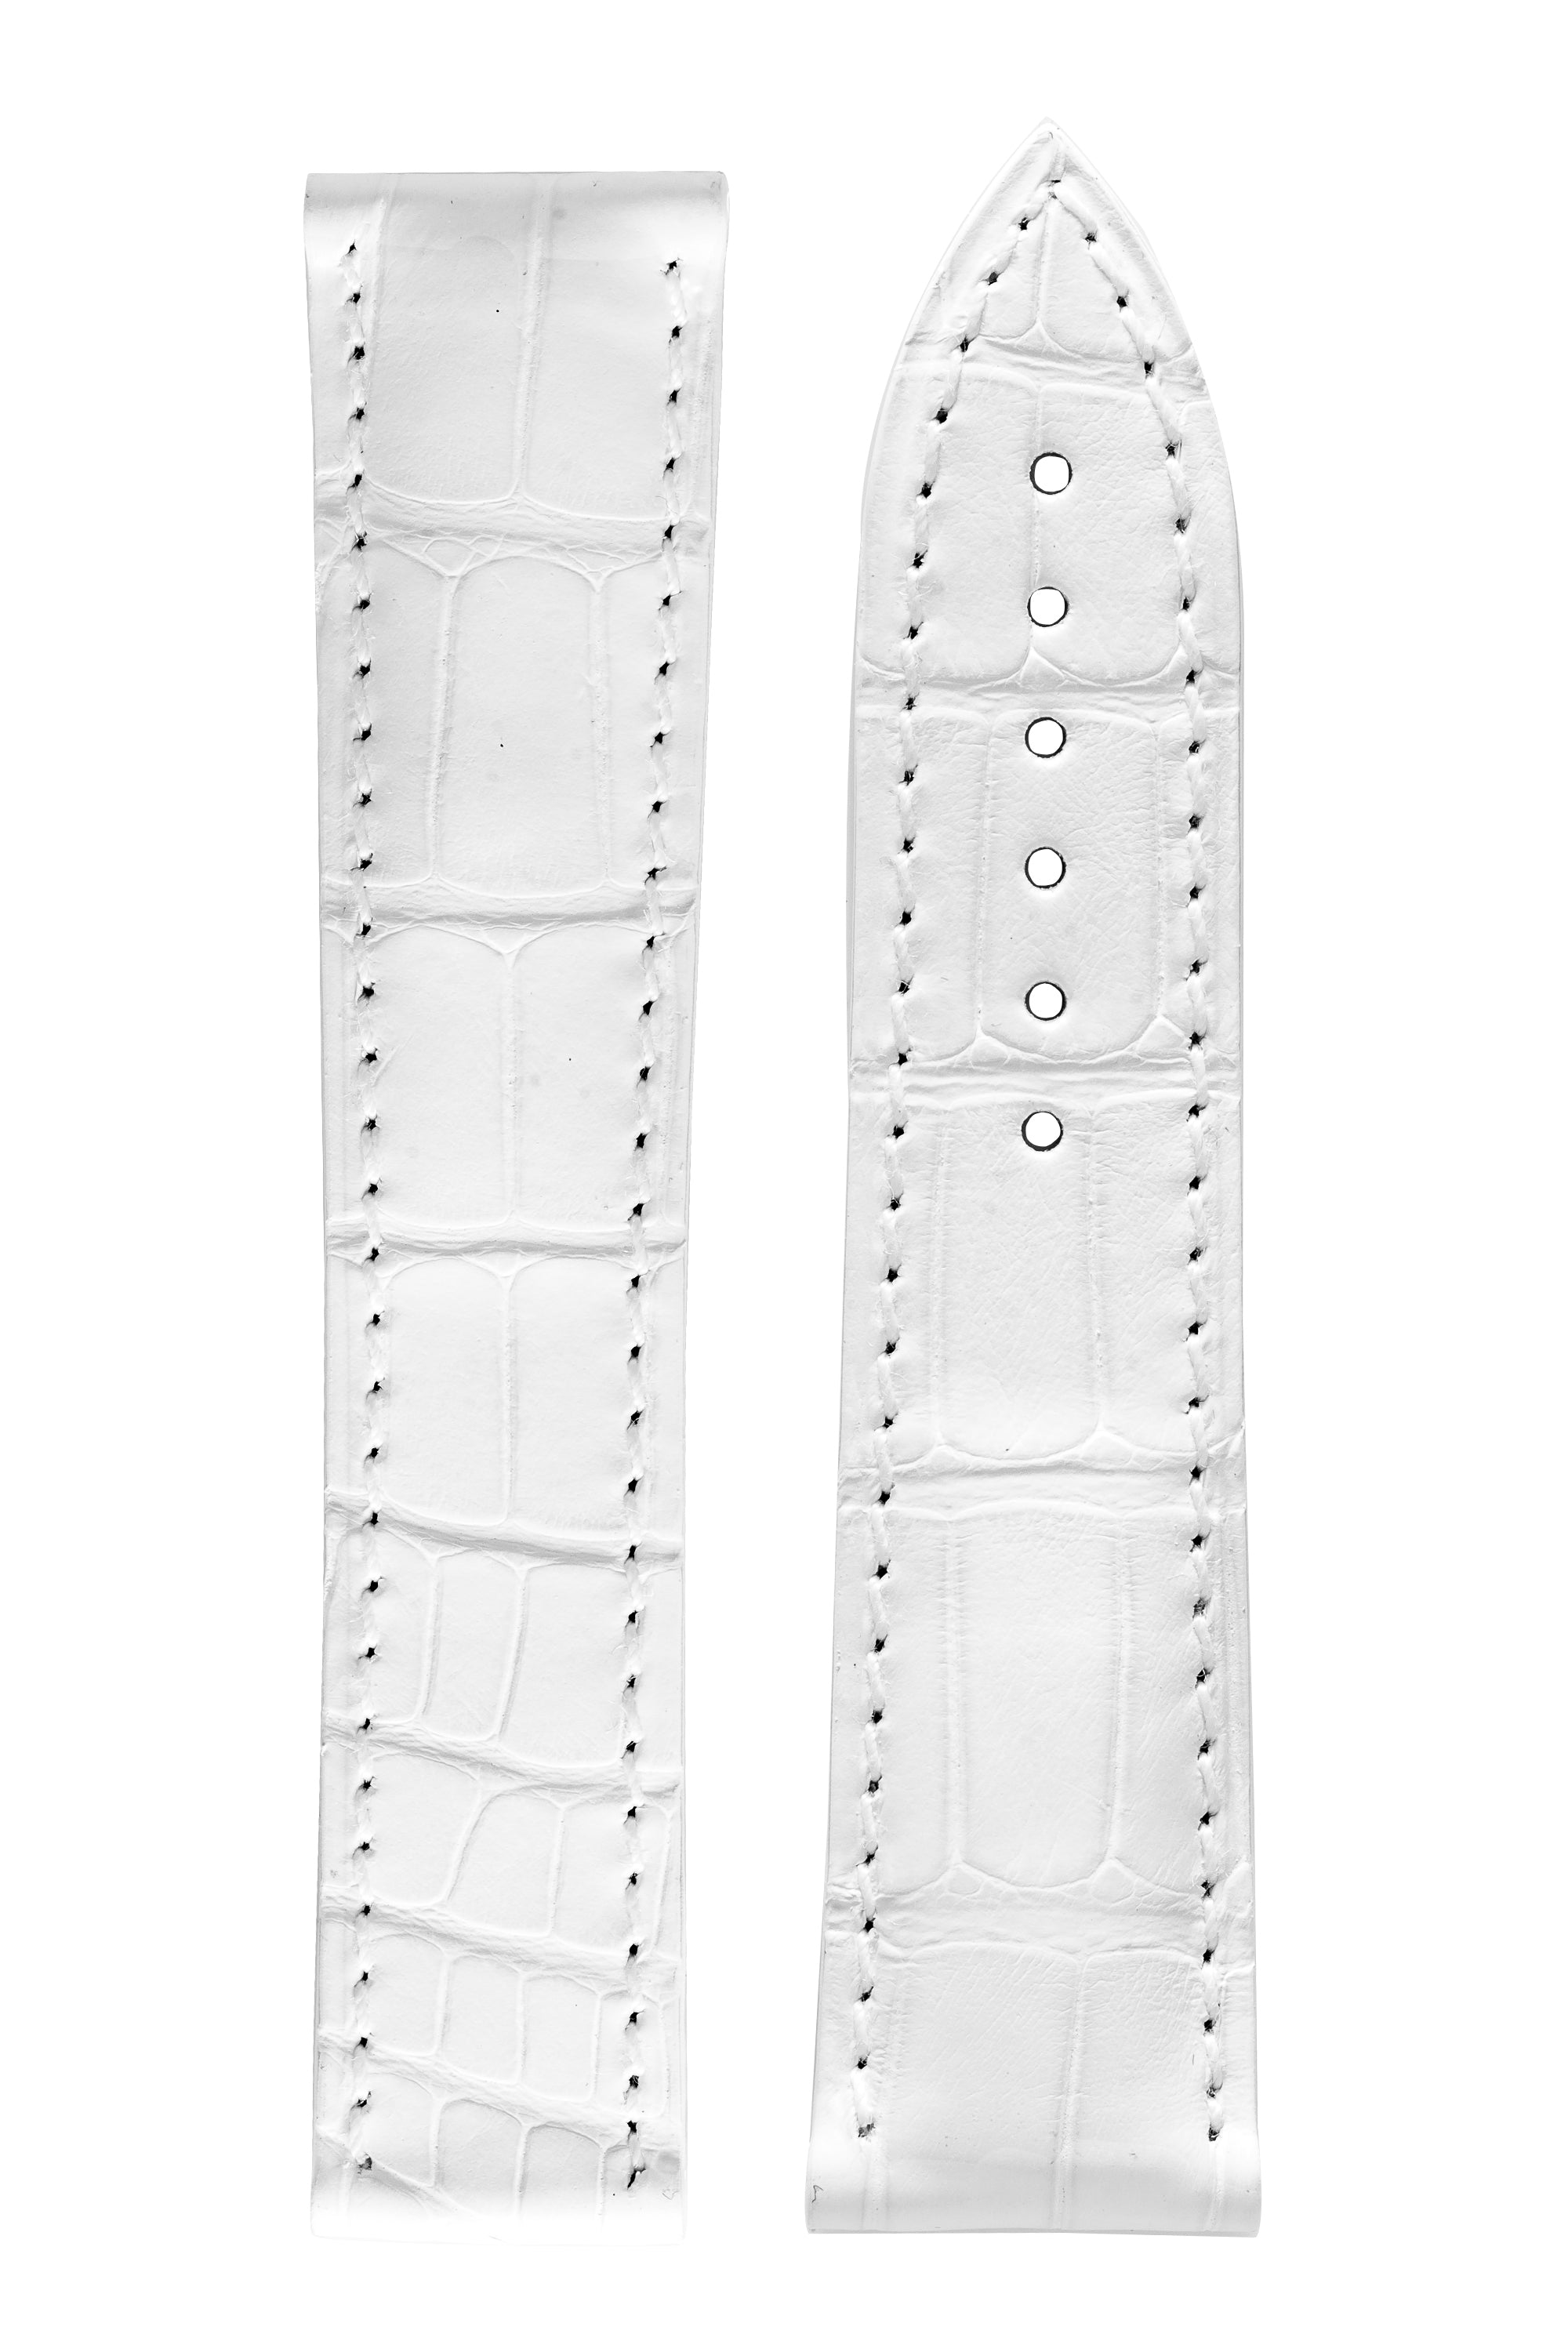 OMEGA 98000112 Genuine Alligator 18mm Short Deployment Watch Strap - WHITE